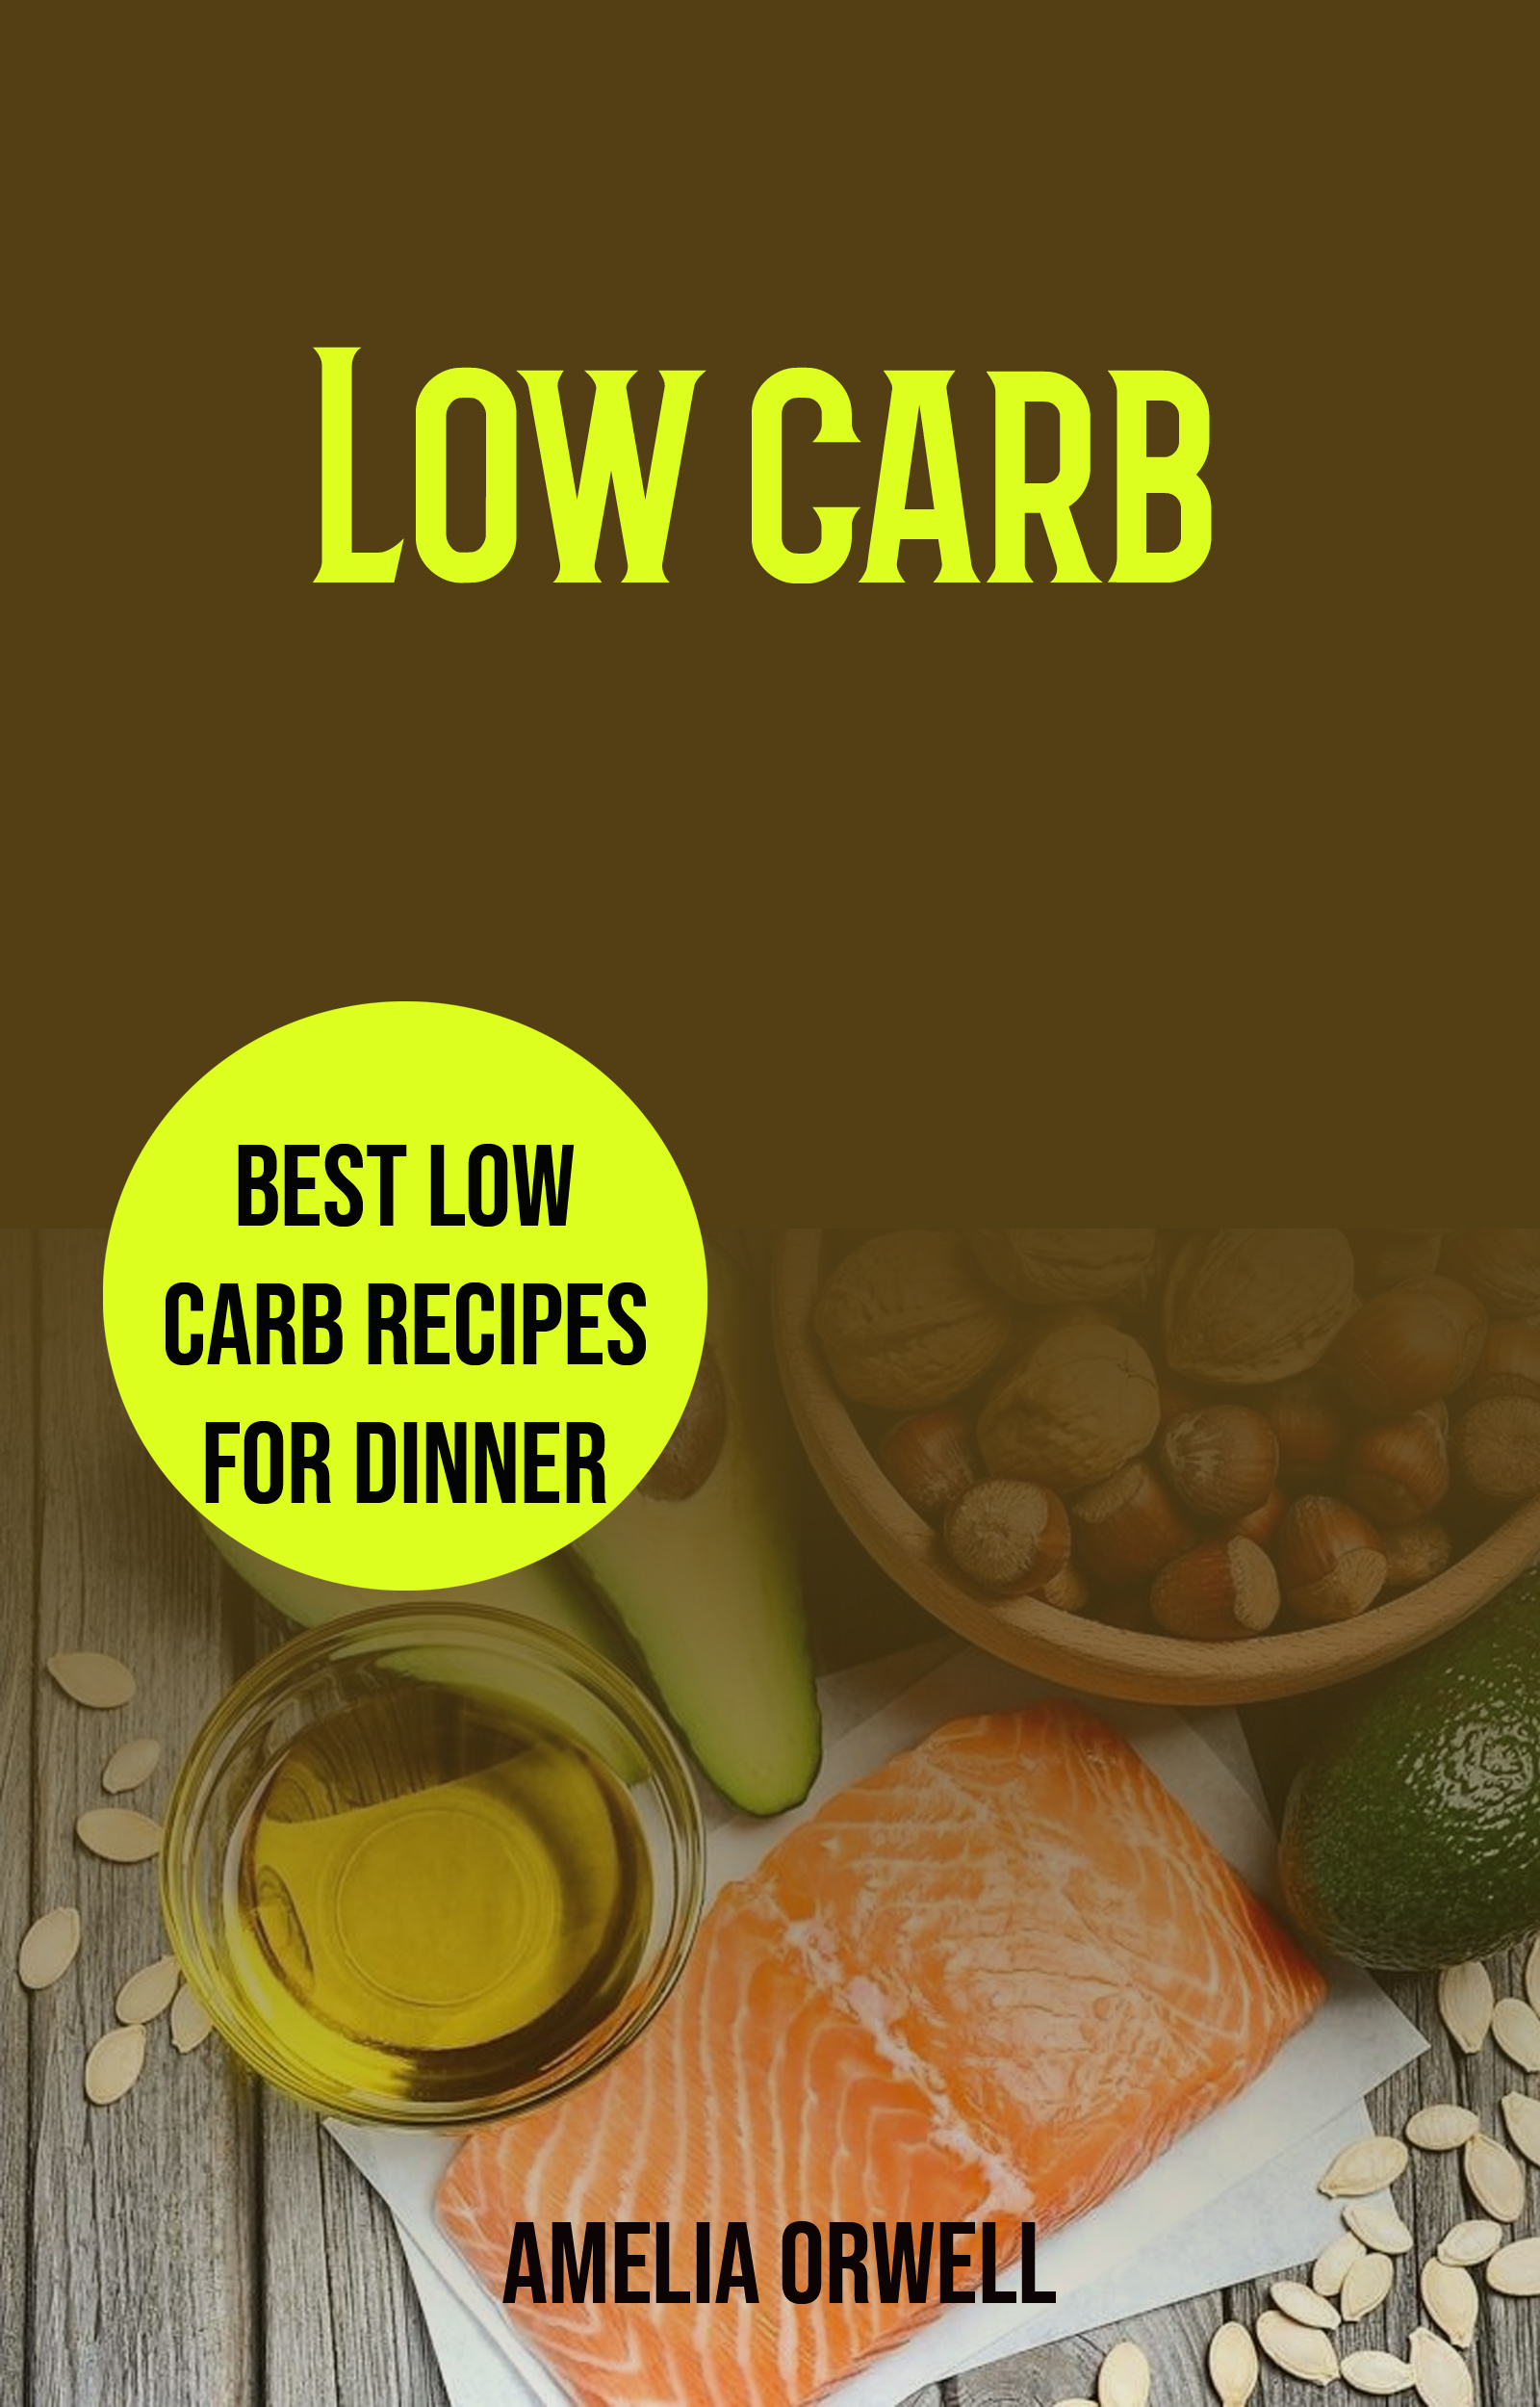 Low carb: best low carb recipes for dinner